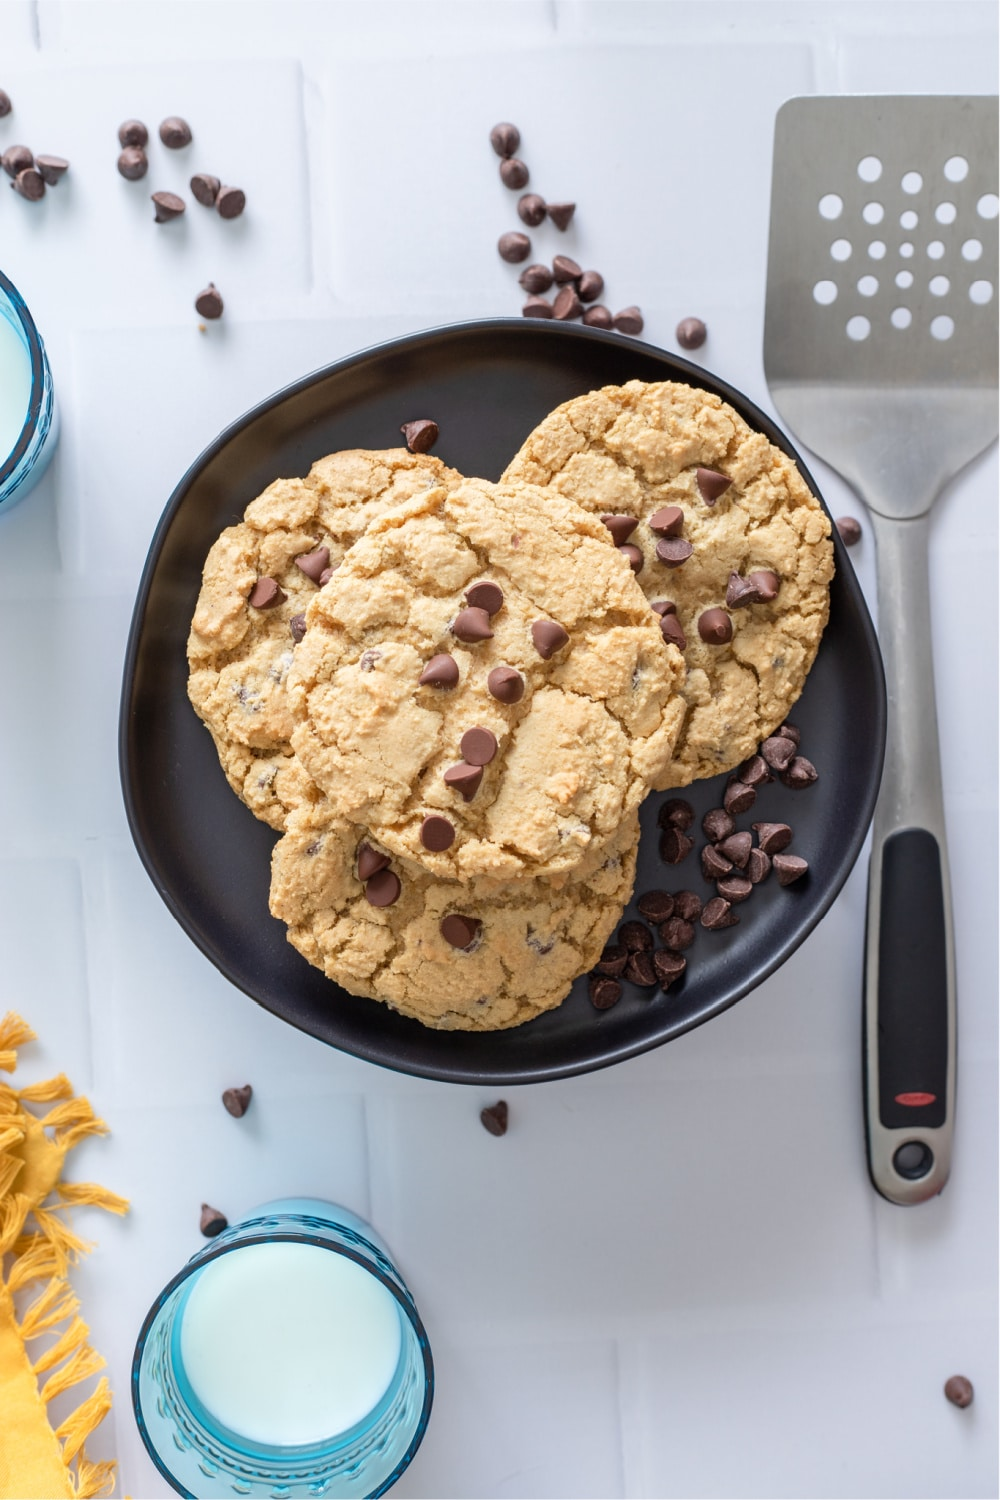 Chocolate Chip Cookies on black plate with spatula